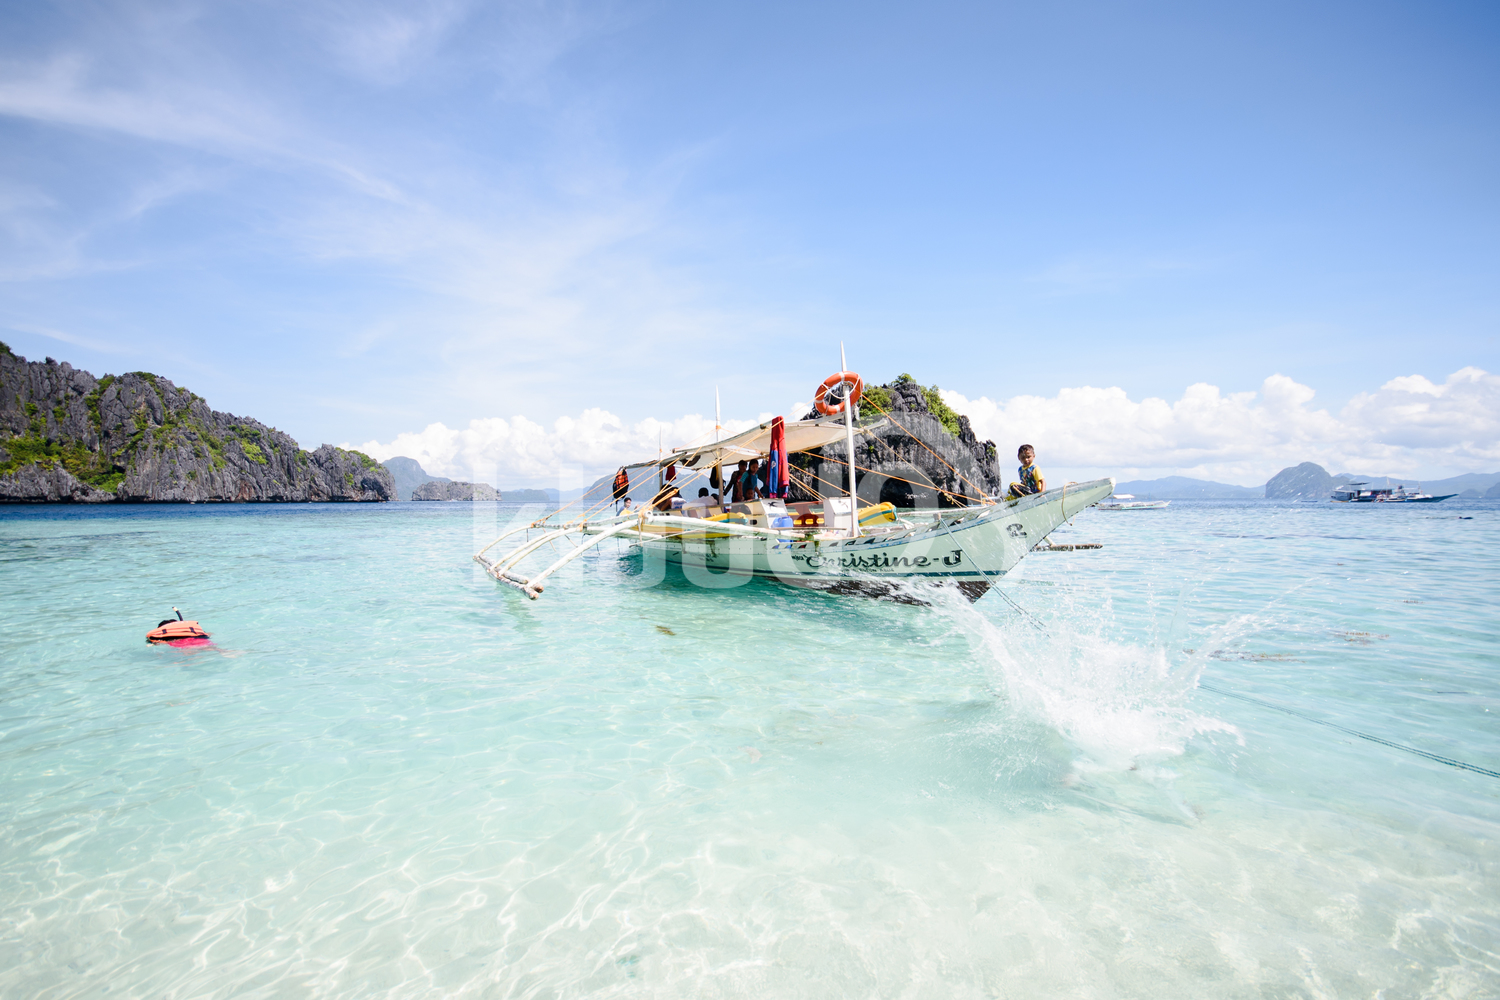 Paradise island and crystal clear water of El Nido, Palawan, Philippines with a boat in the sea